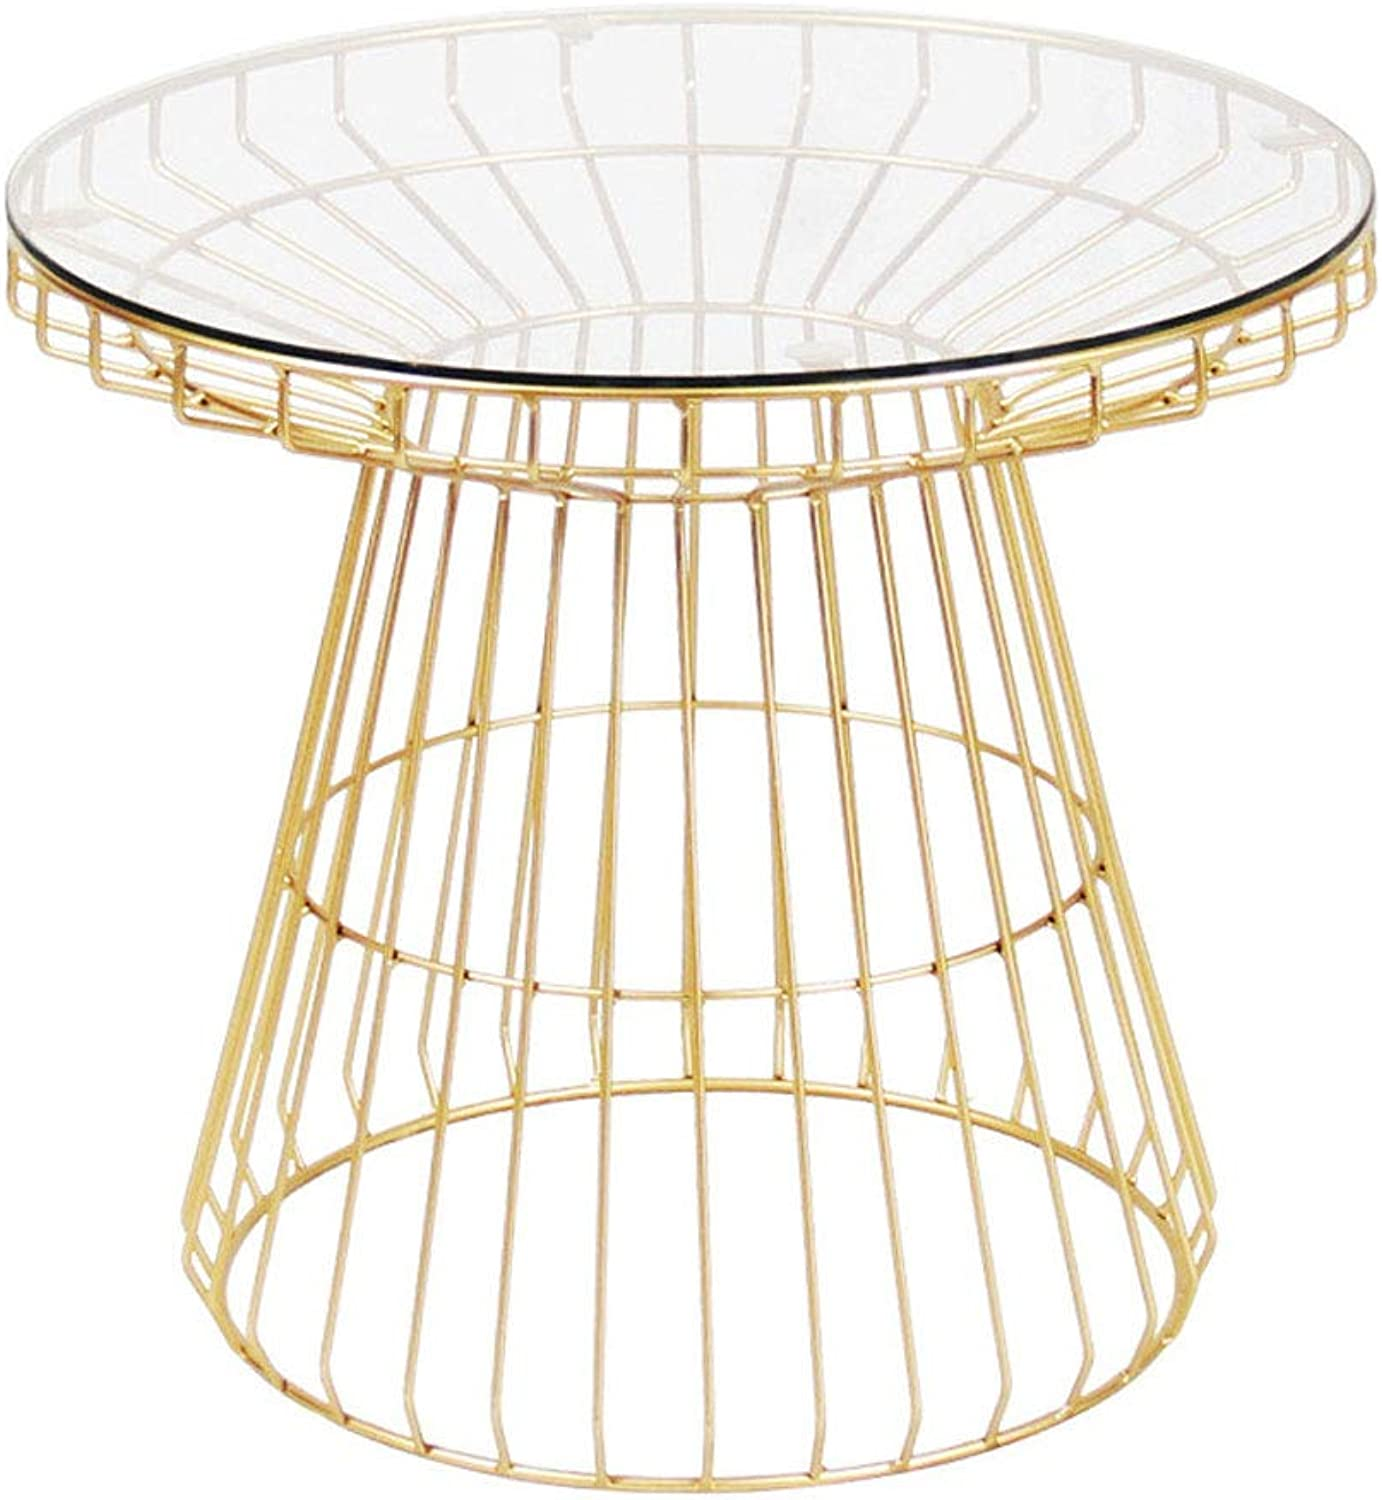 LYN Sofa Side End Table, Northern European Fashion Simple Coffee Table golden Transparent Glass Surface Small Apartment Small Round Table